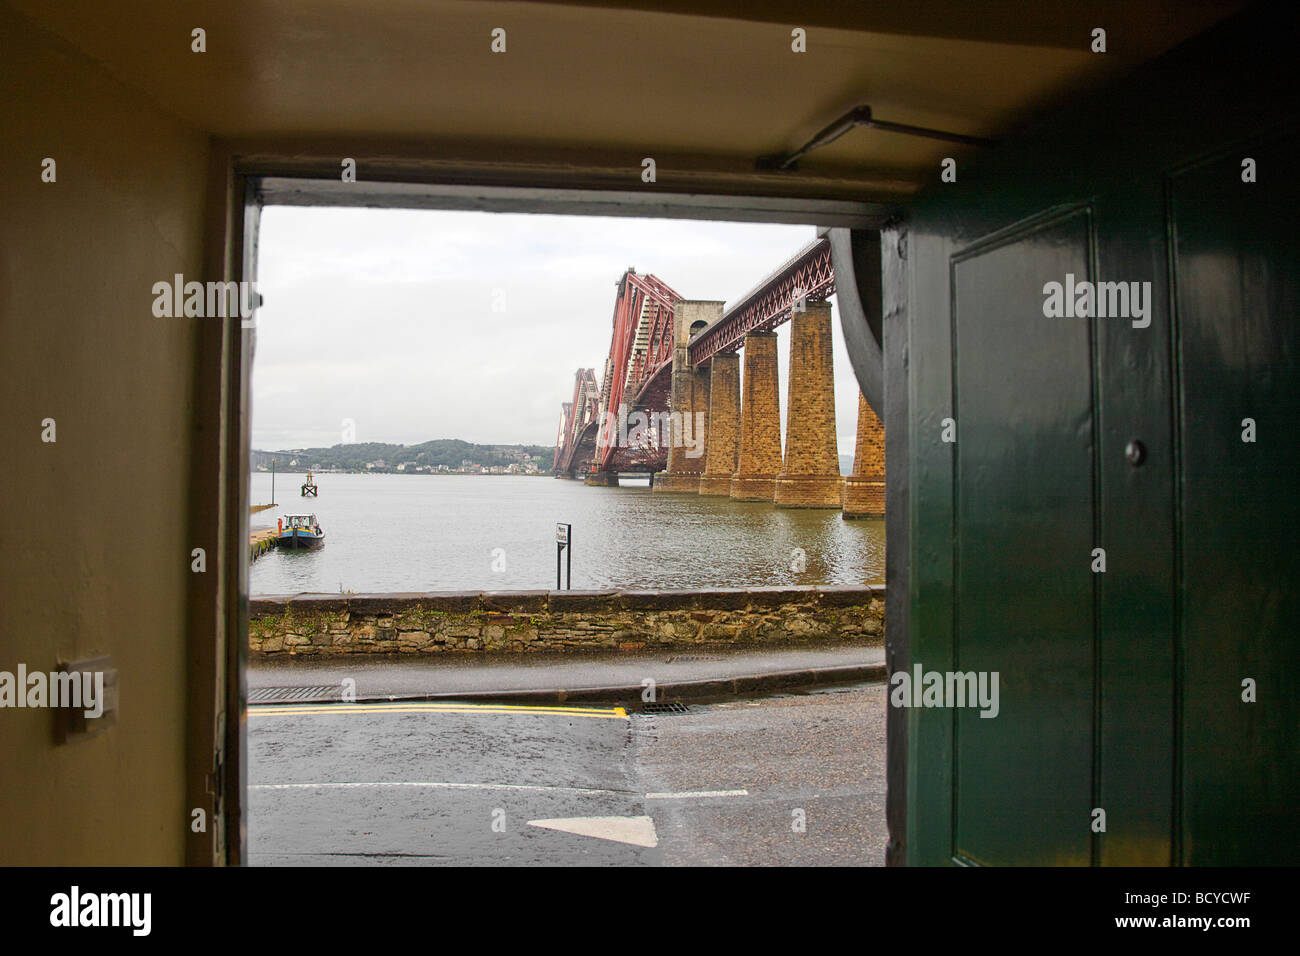 The Forth Bridge is a cantilever railway bridge over the Firth of Forth - Stock Image